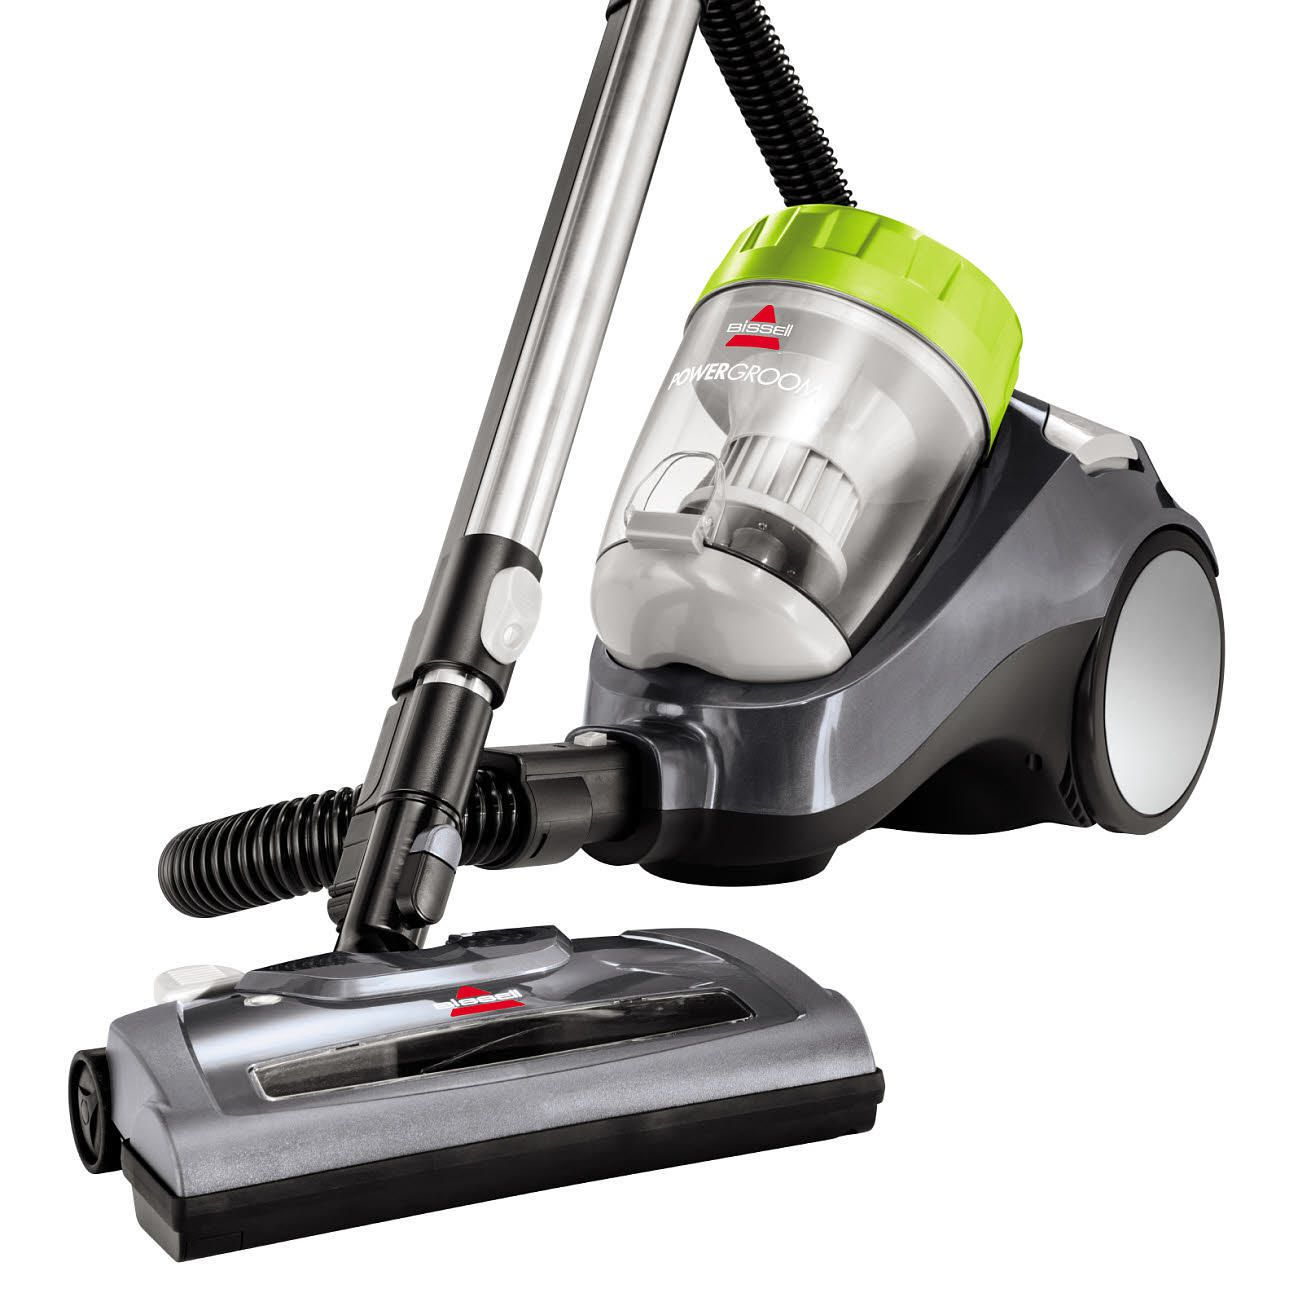 Vacuum Cleaners For Carpets And Hardwood Floors